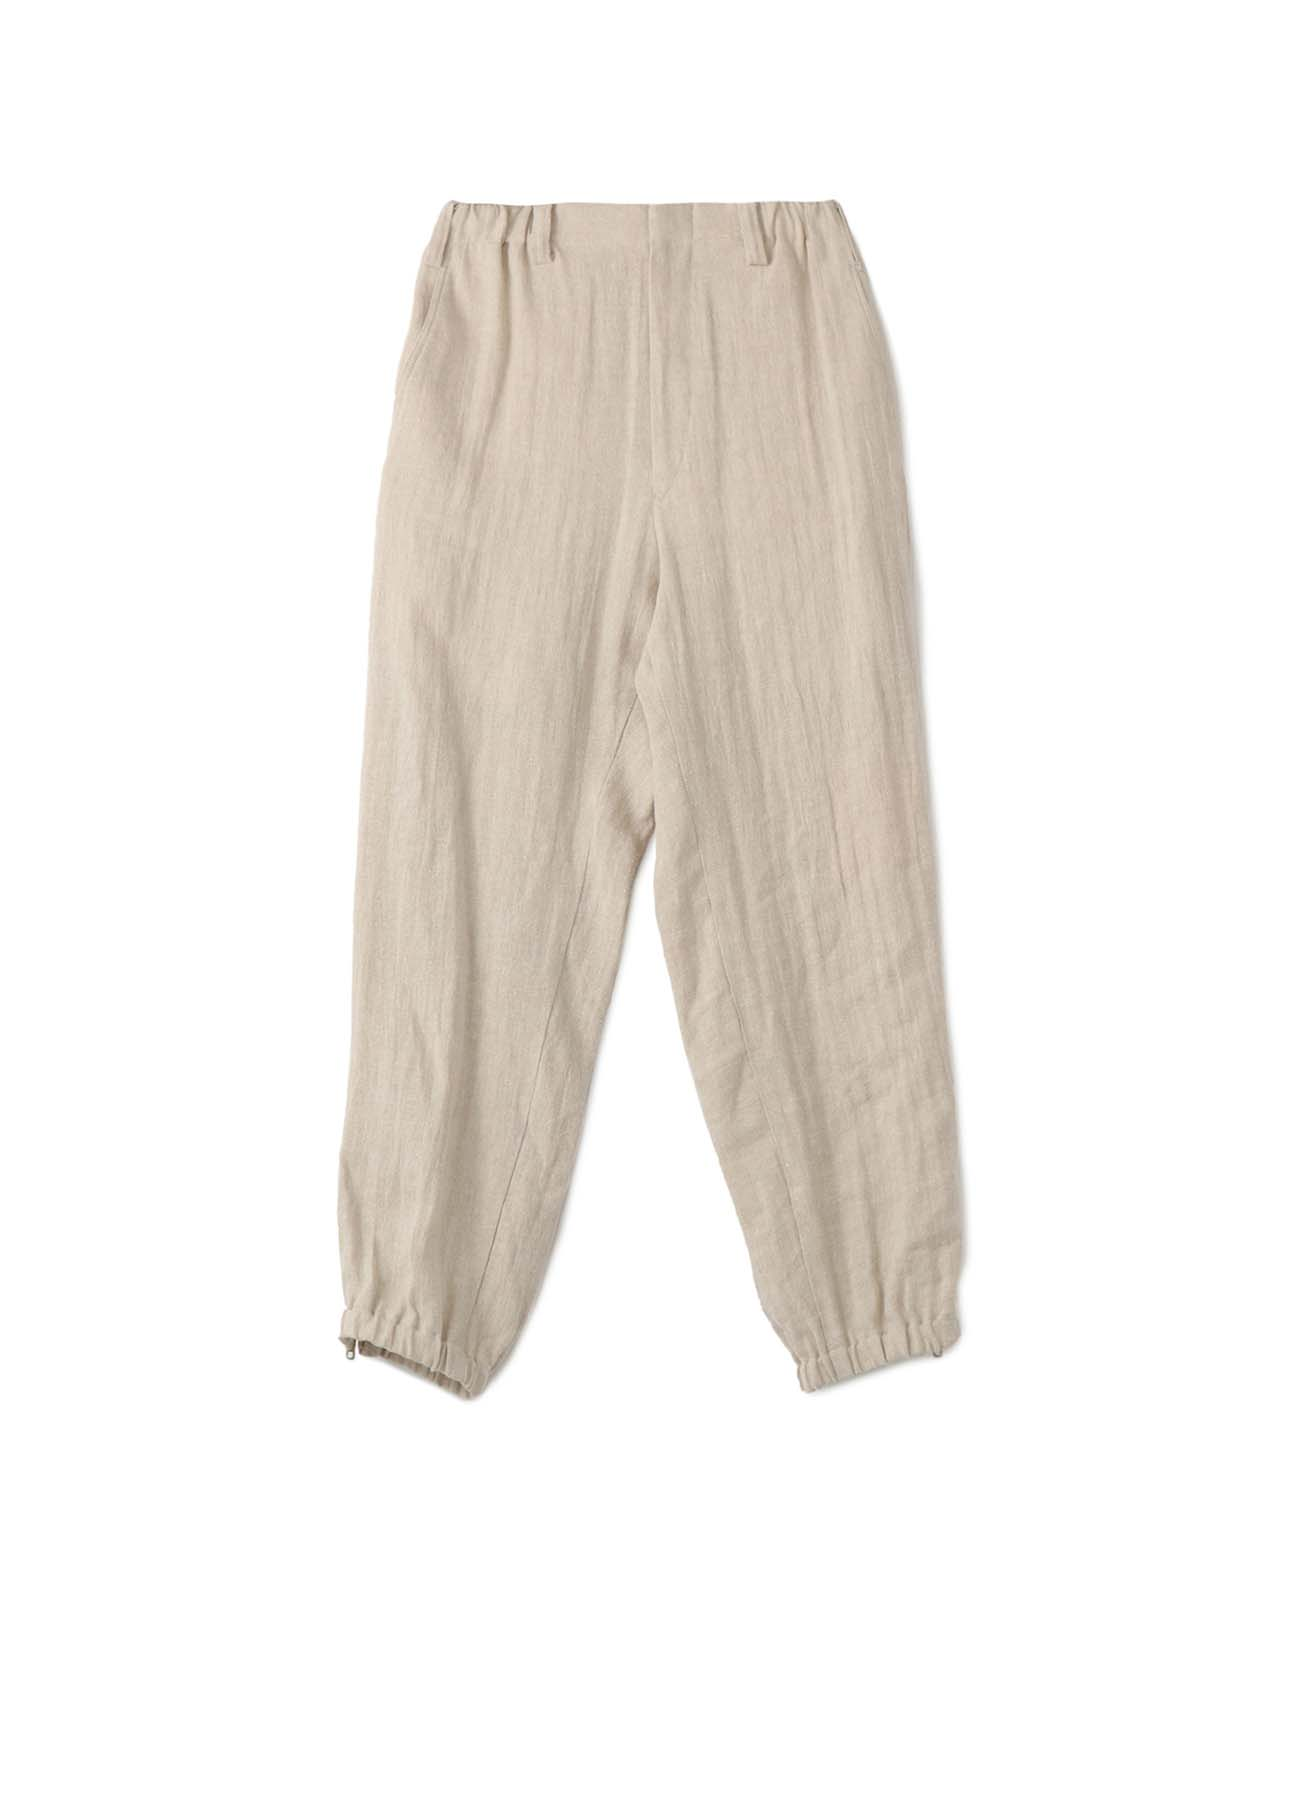 CLASSIC SILK NEP LINEN HERRINGBONE SIDE STRIPE PANTS